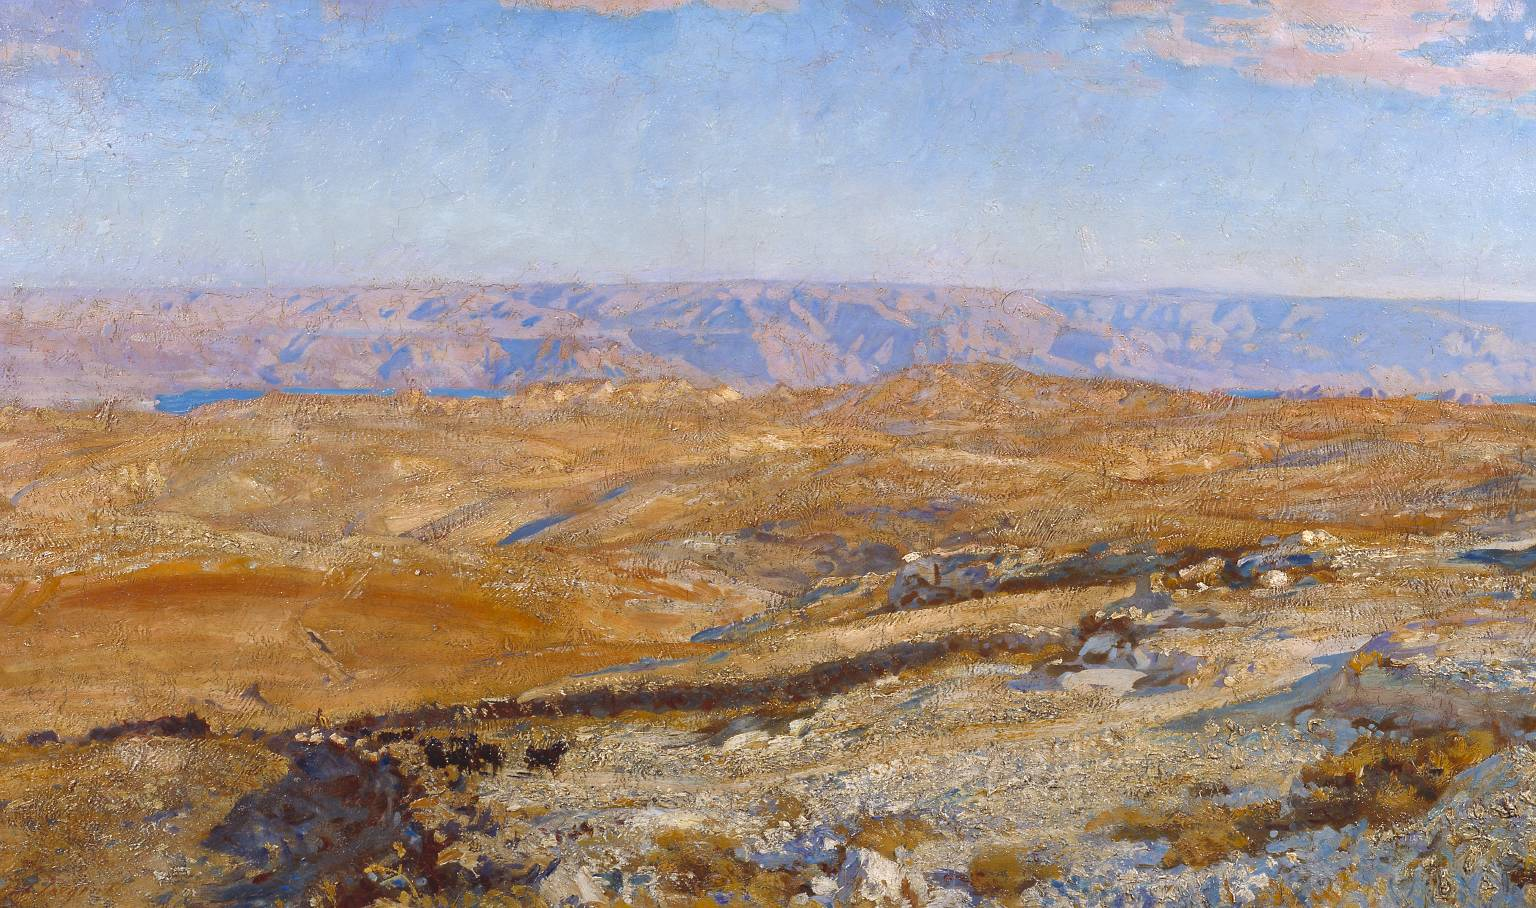 The Mountains of Moab 1905 John Singer Sargent 1856-1925 Presented by the heirs of Mrs Ormond 1957 http://www.tate.org.uk/art/work/T00124